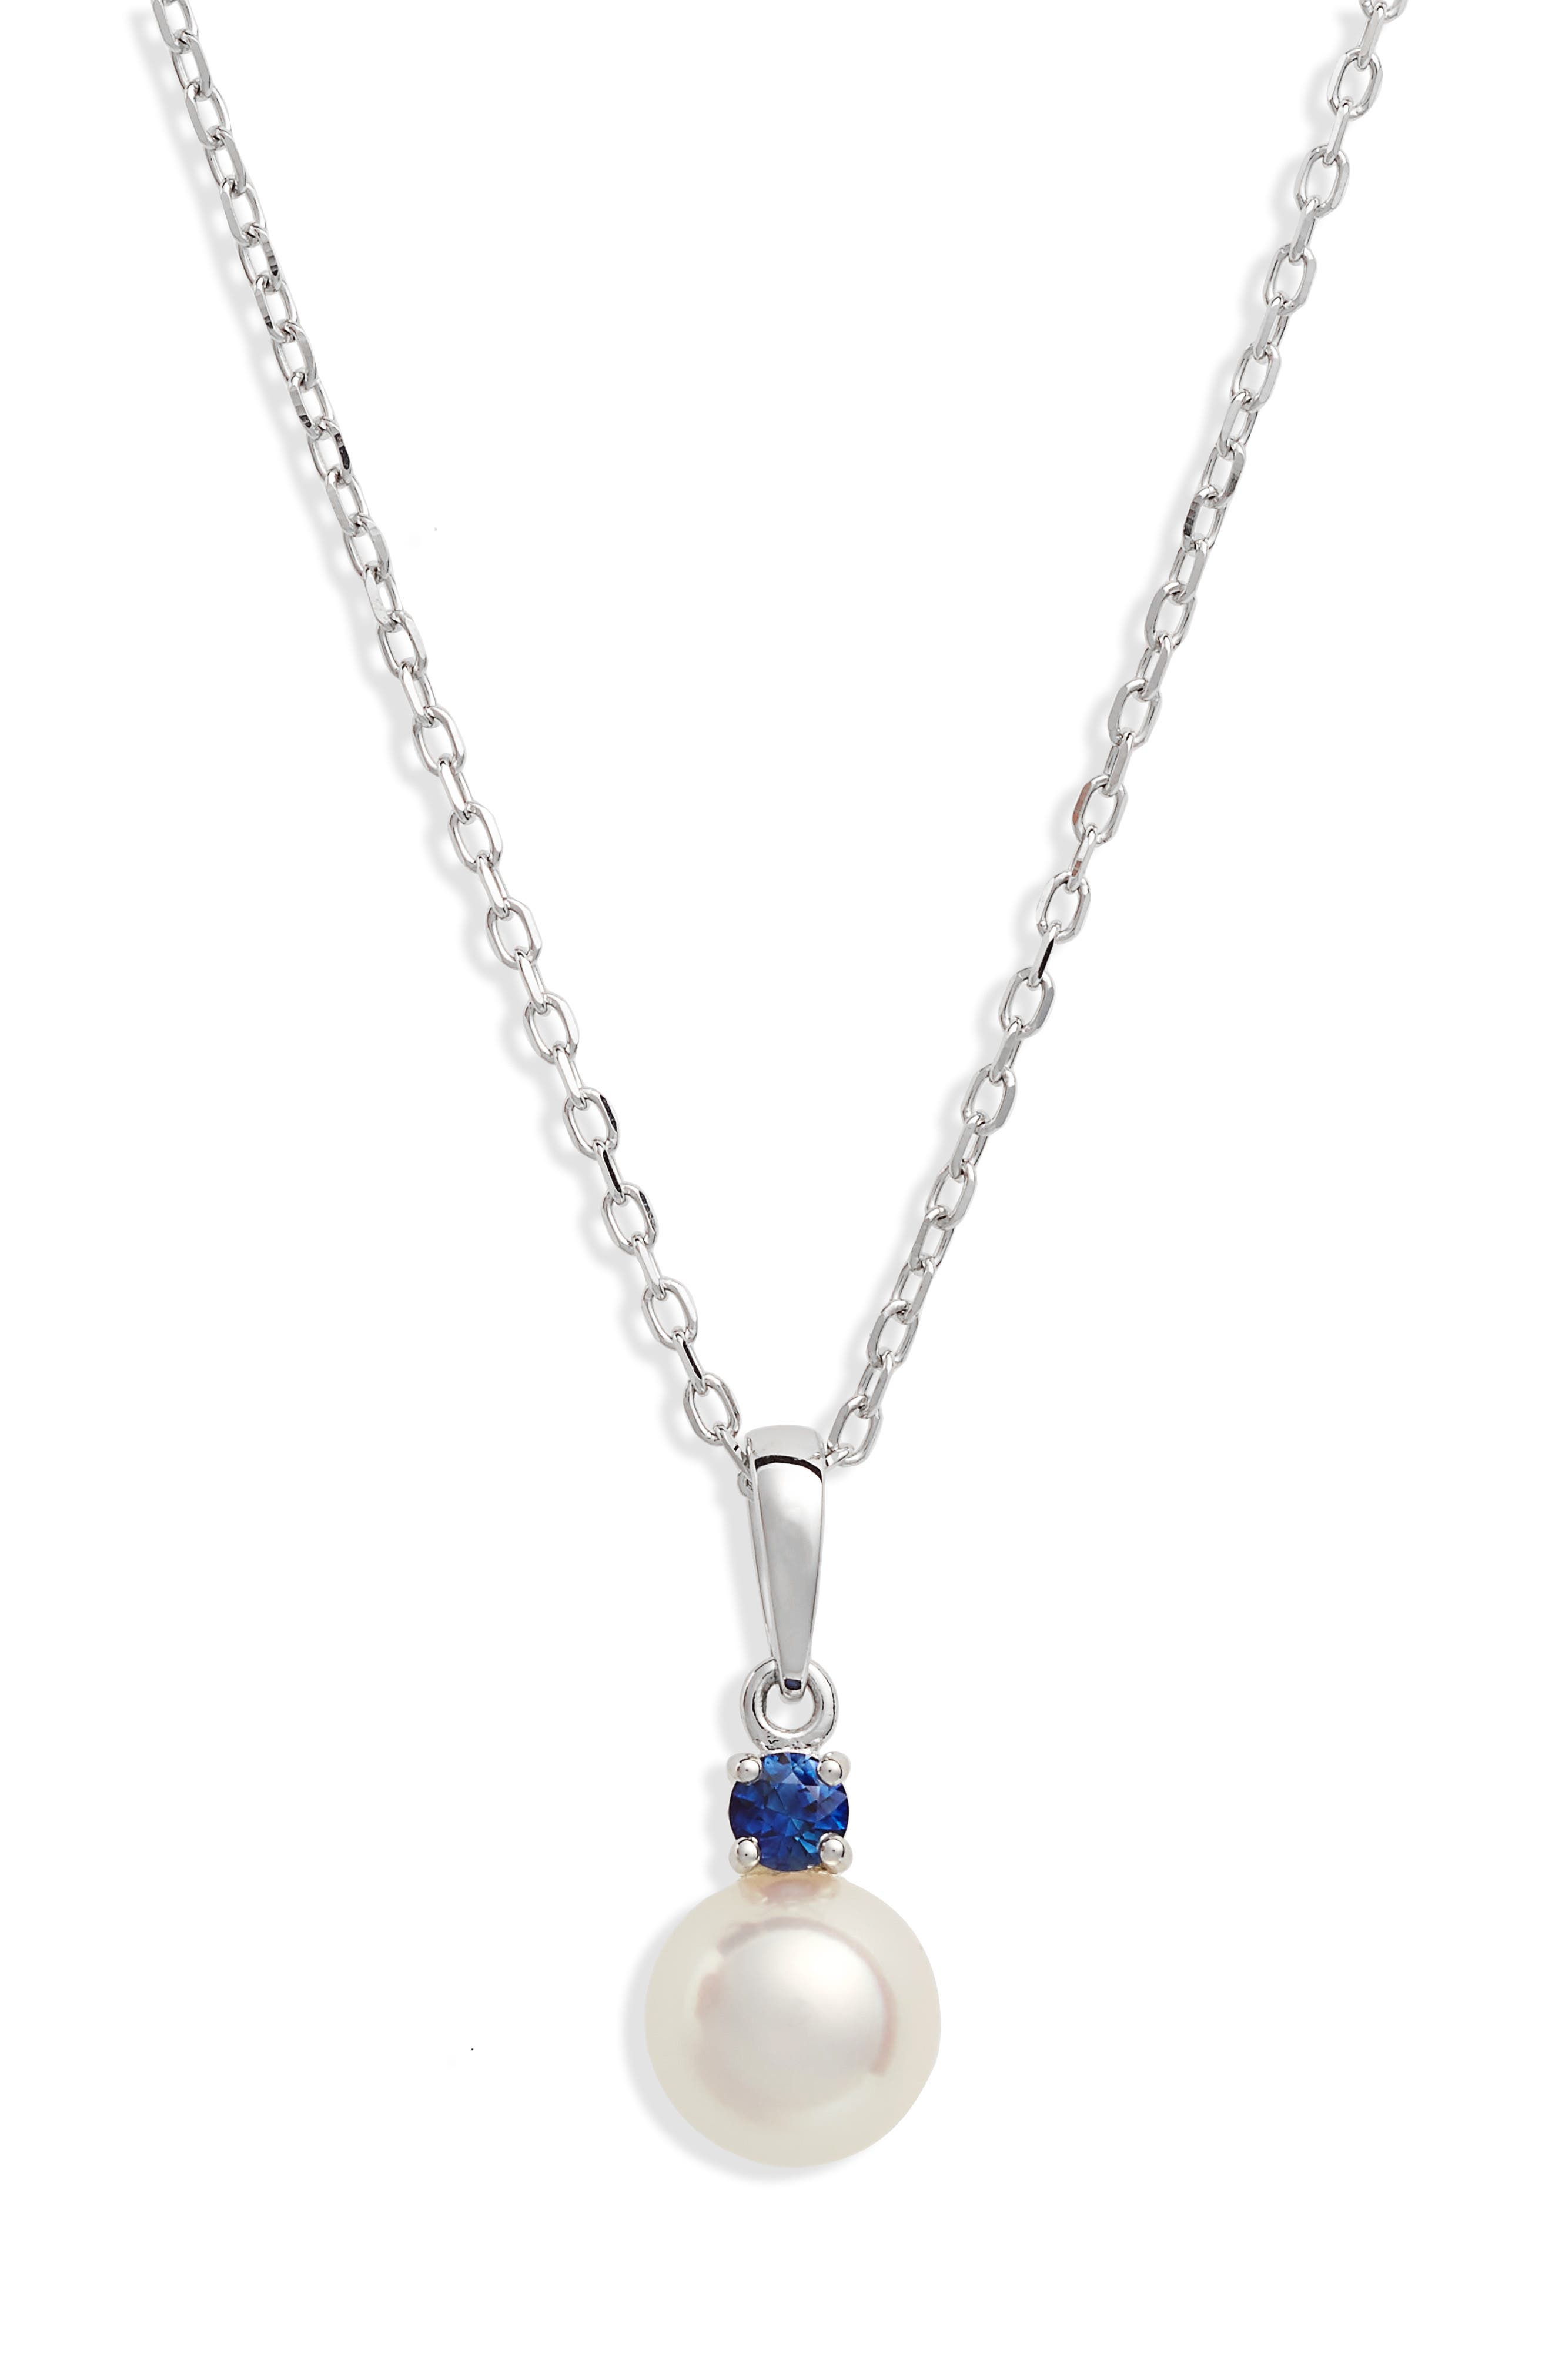 Akoya Cultured Pearl & Sapphire Pendant Necklace,                             Main thumbnail 1, color,                             White Gold